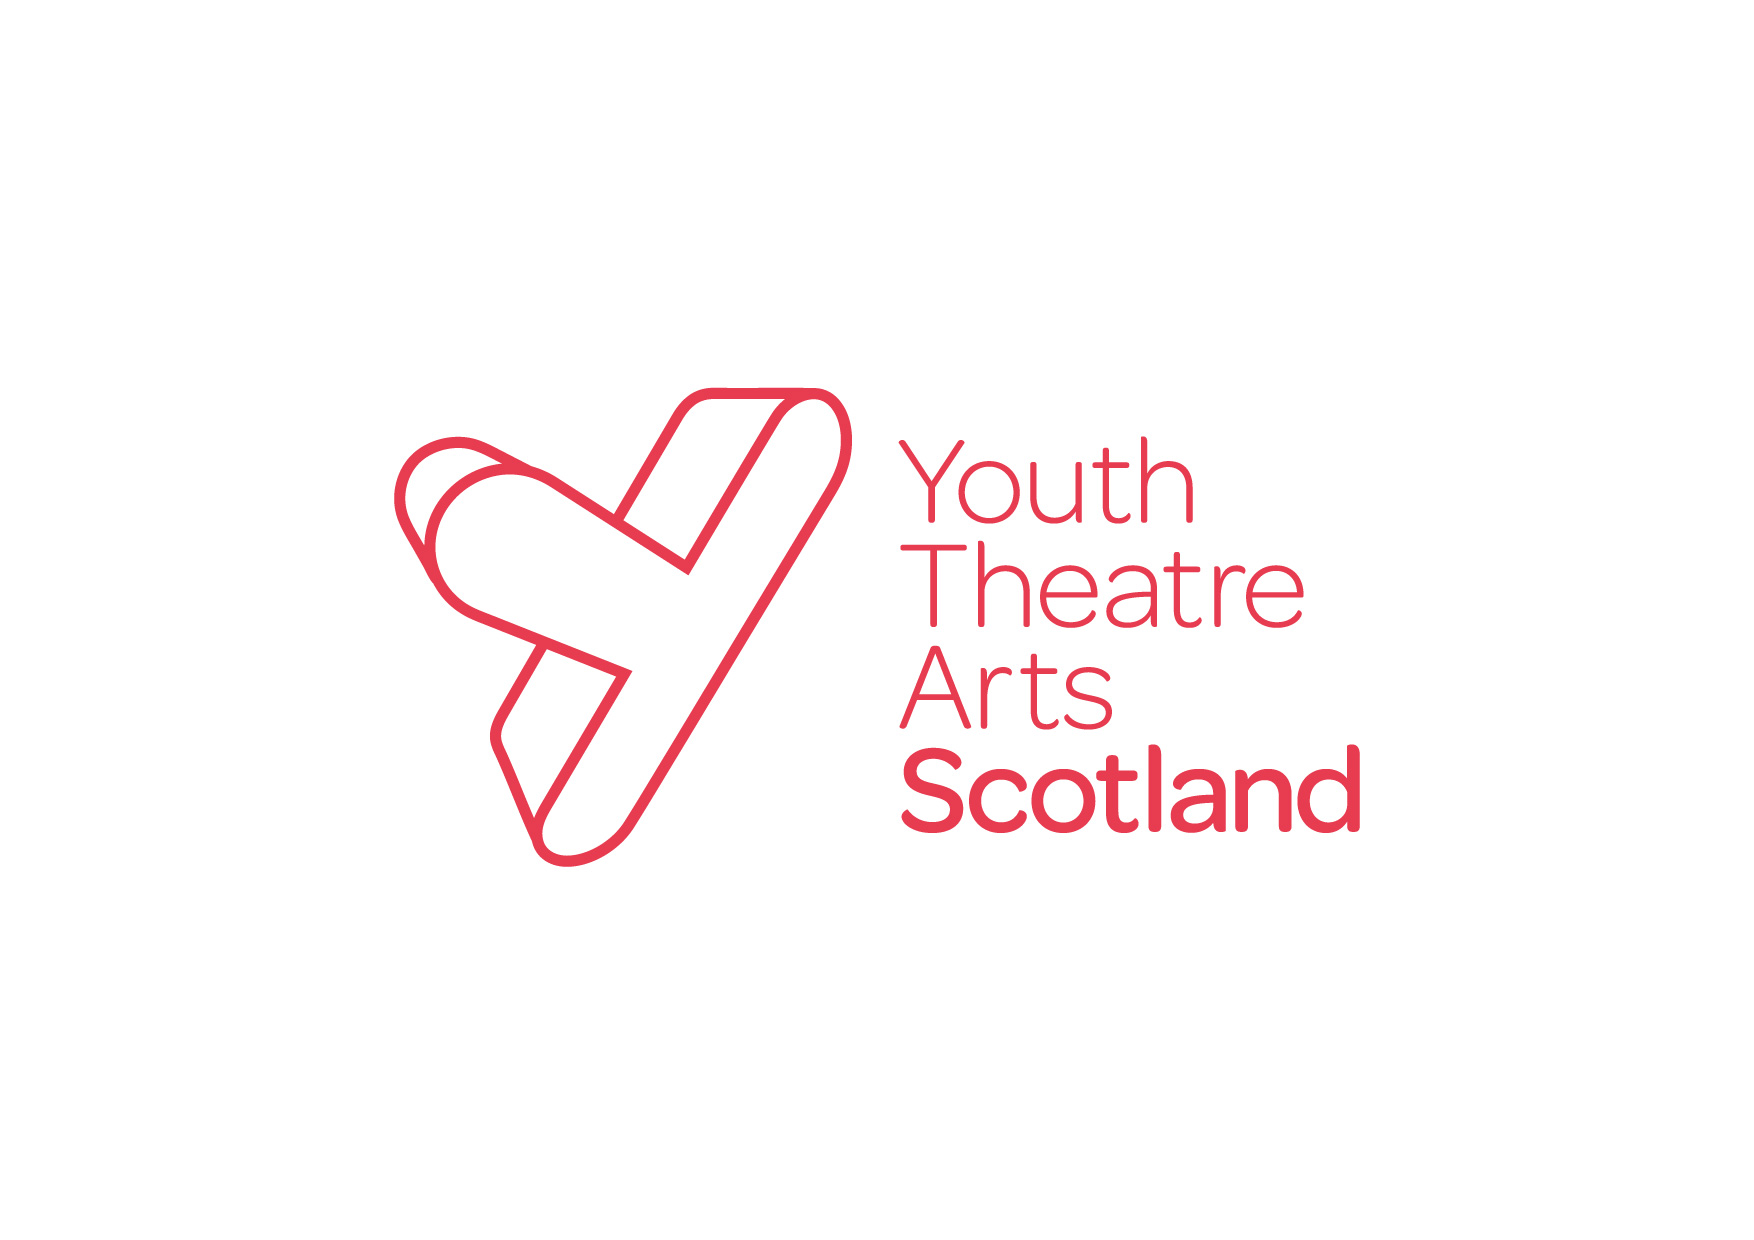 youth theatre arts scotland logo